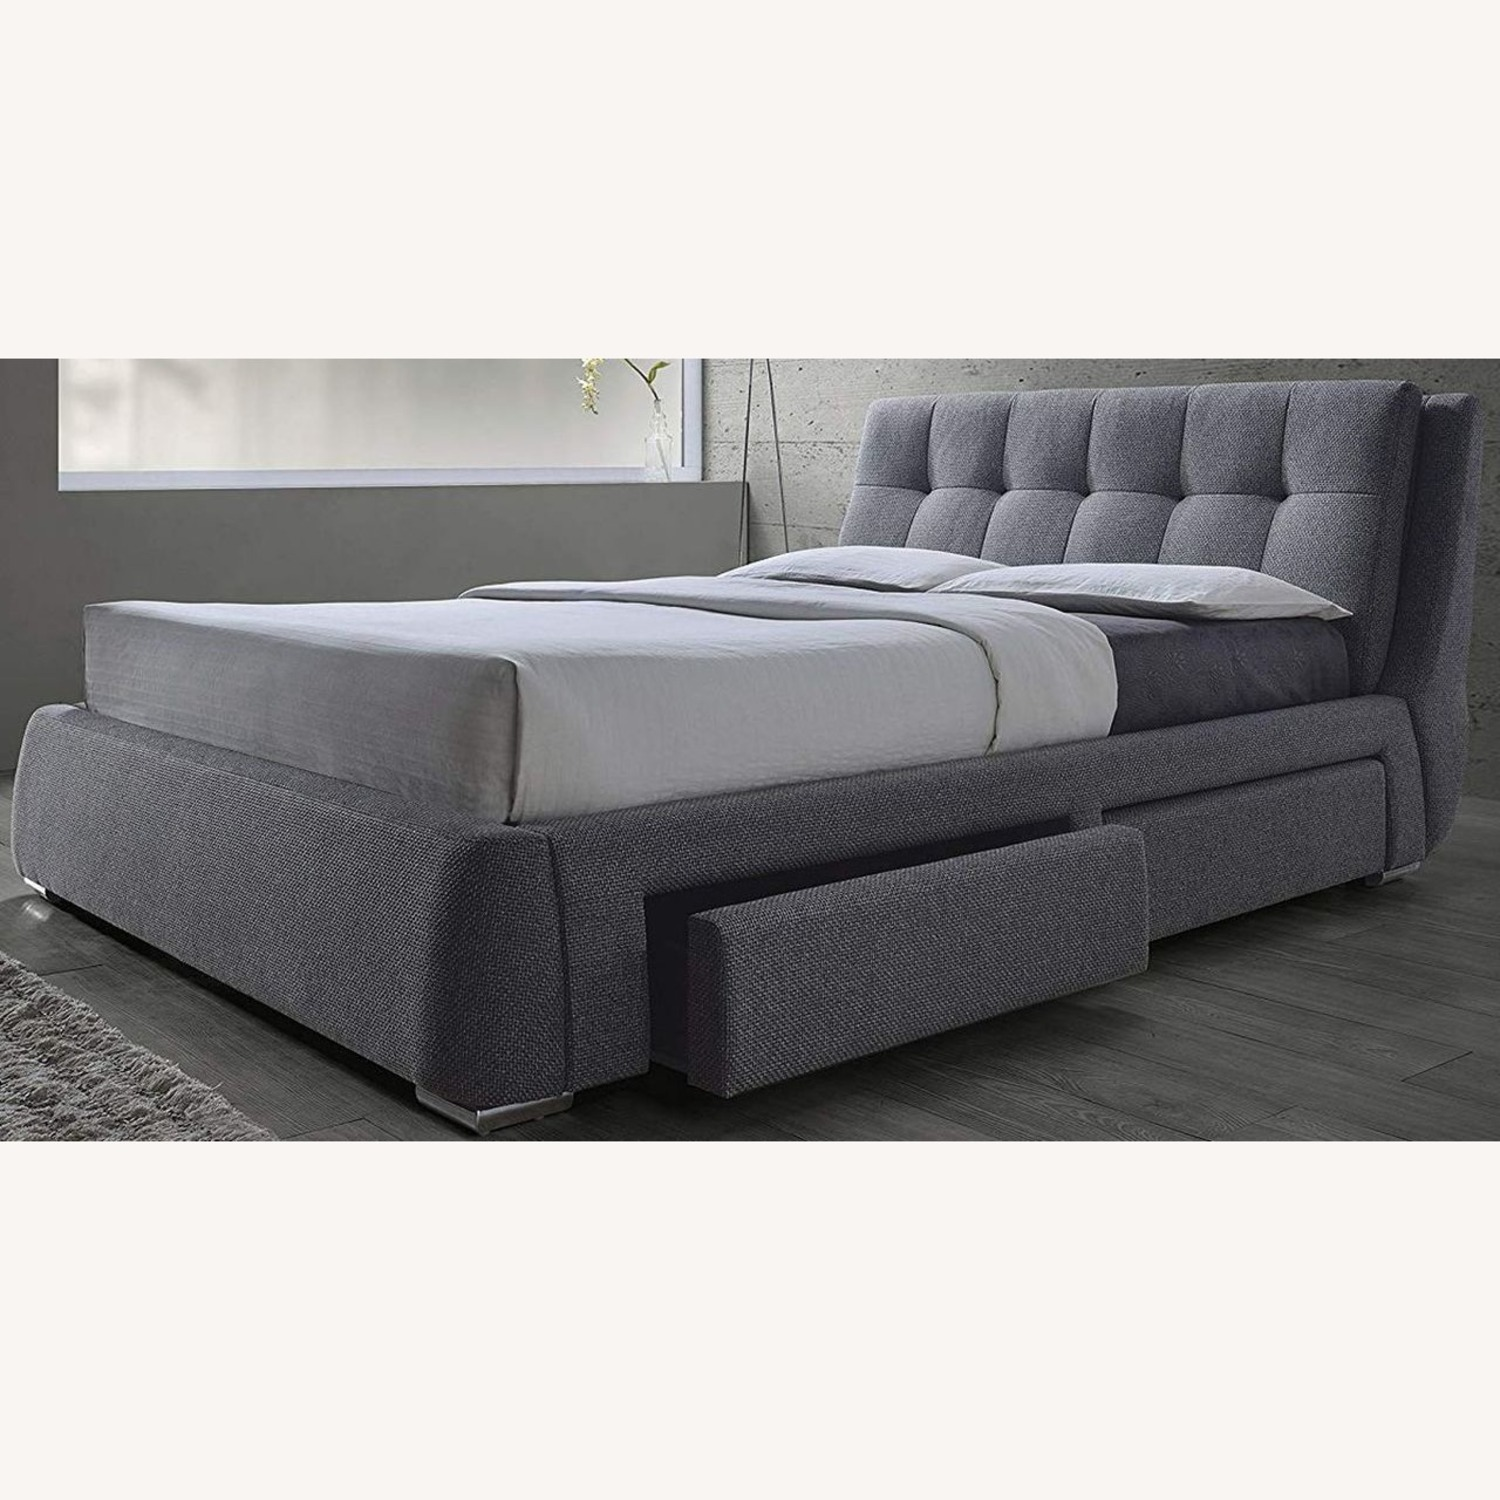 King Storage Bed W/ 4 Drawers In Soft Grey - image-0